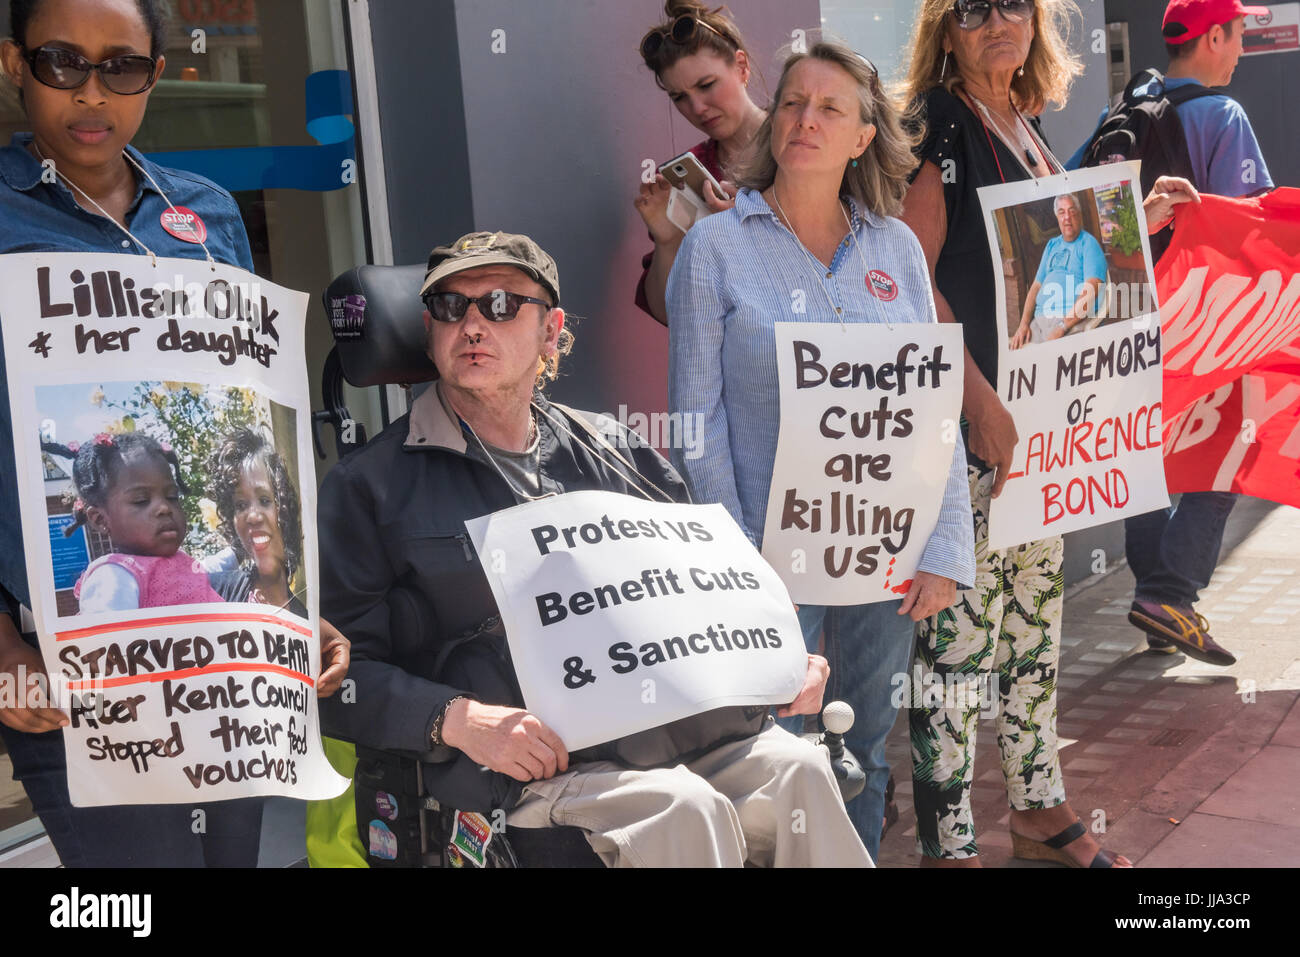 London, UK. 18th July 2017. People hold posters including two of people who died as a result of benefit cuts at Stock Photo